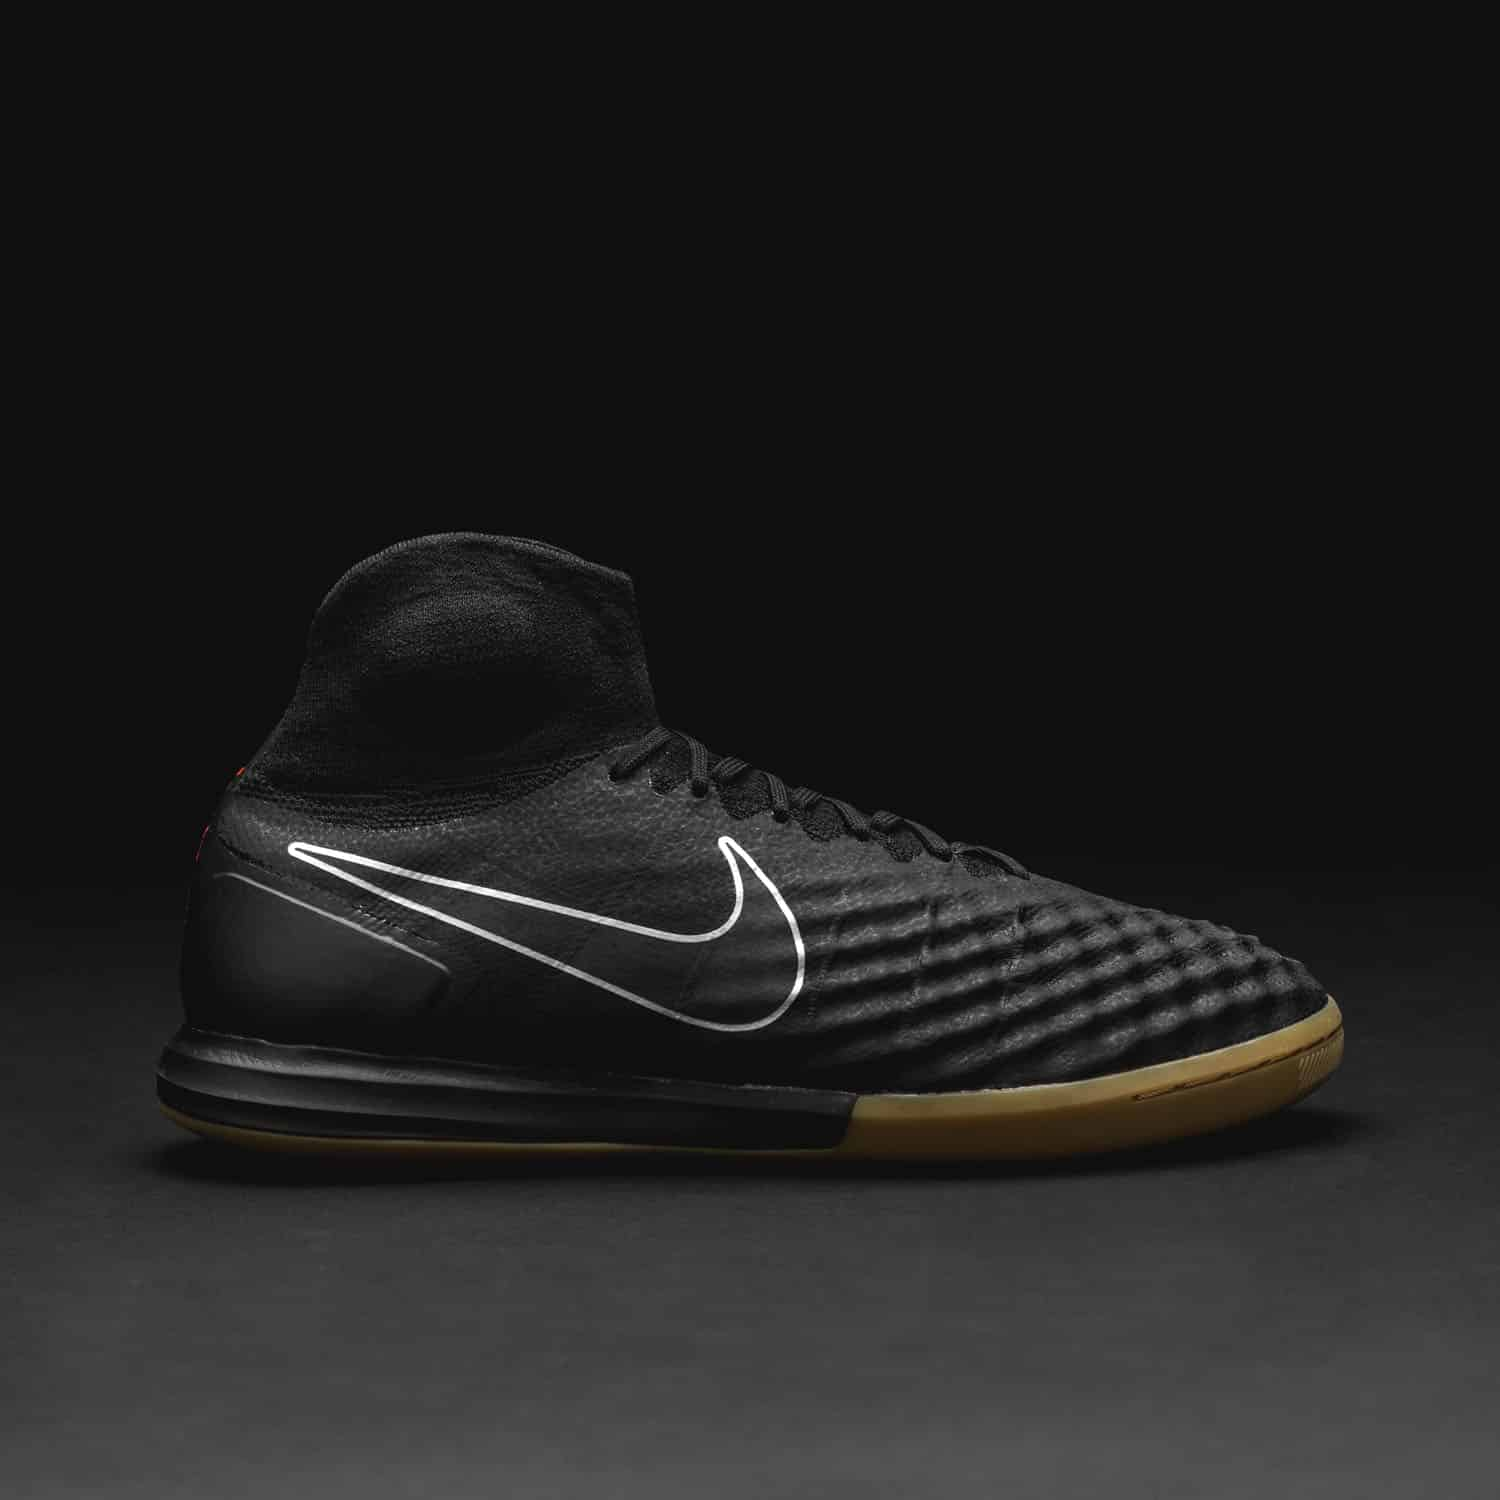 chaussures-football-Nike-MagistaX-II-Proximo-Pitch-Dark-2